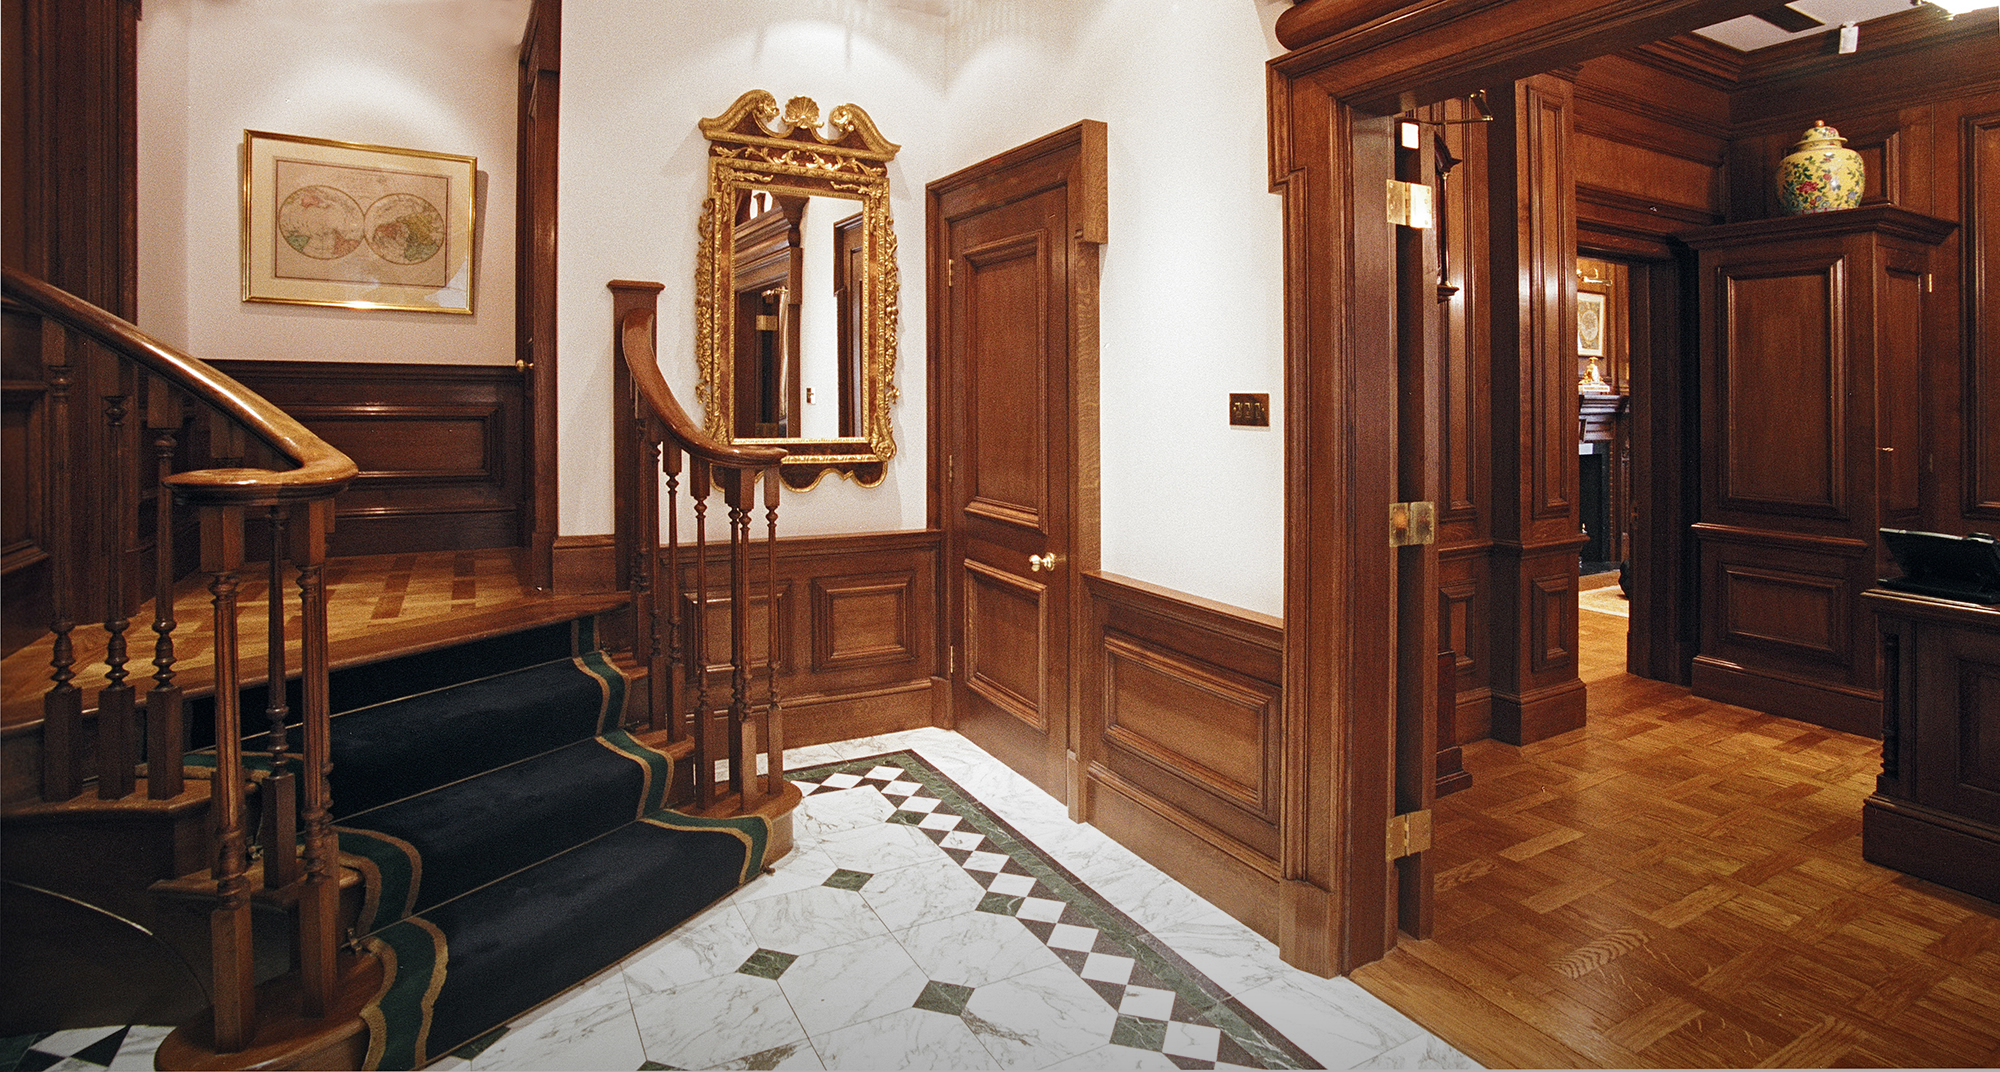 Oak panelling doors and staircase